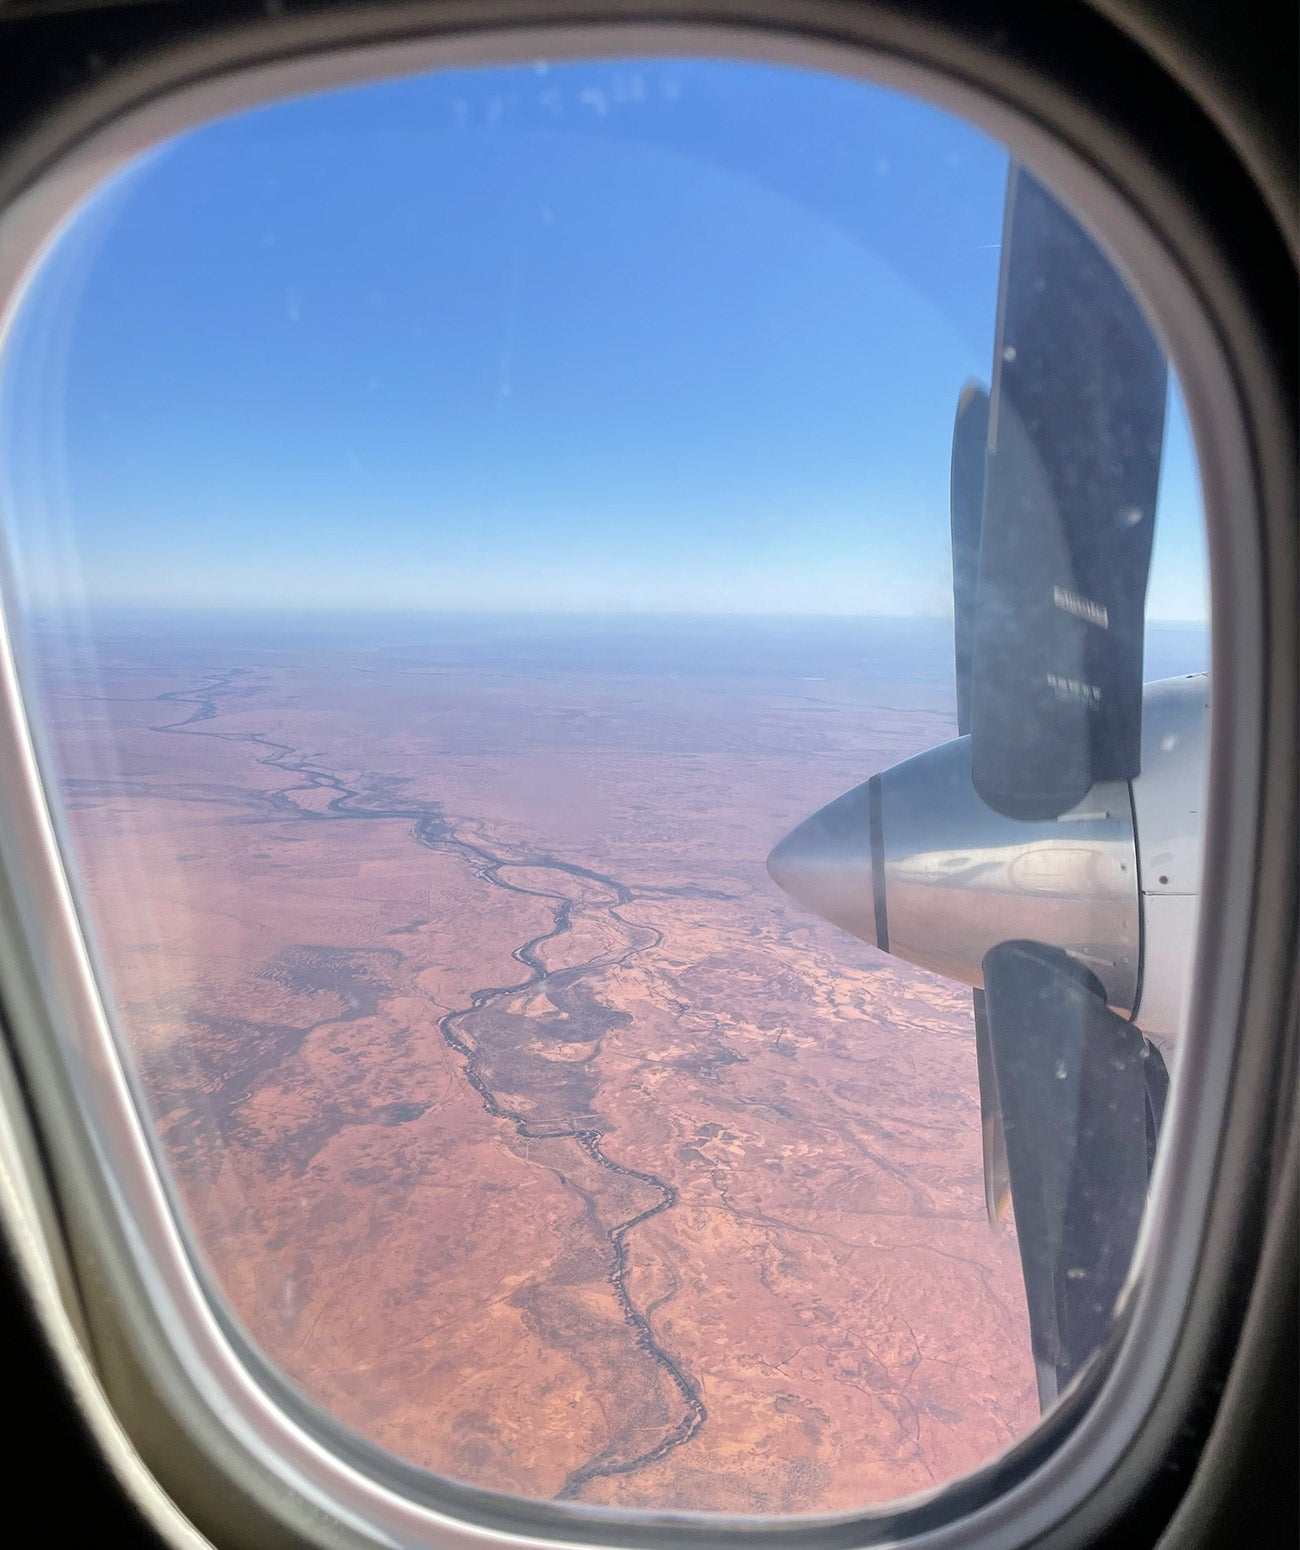 Flying into Broken Hill to visit Mungo National Park and shoot Nomada